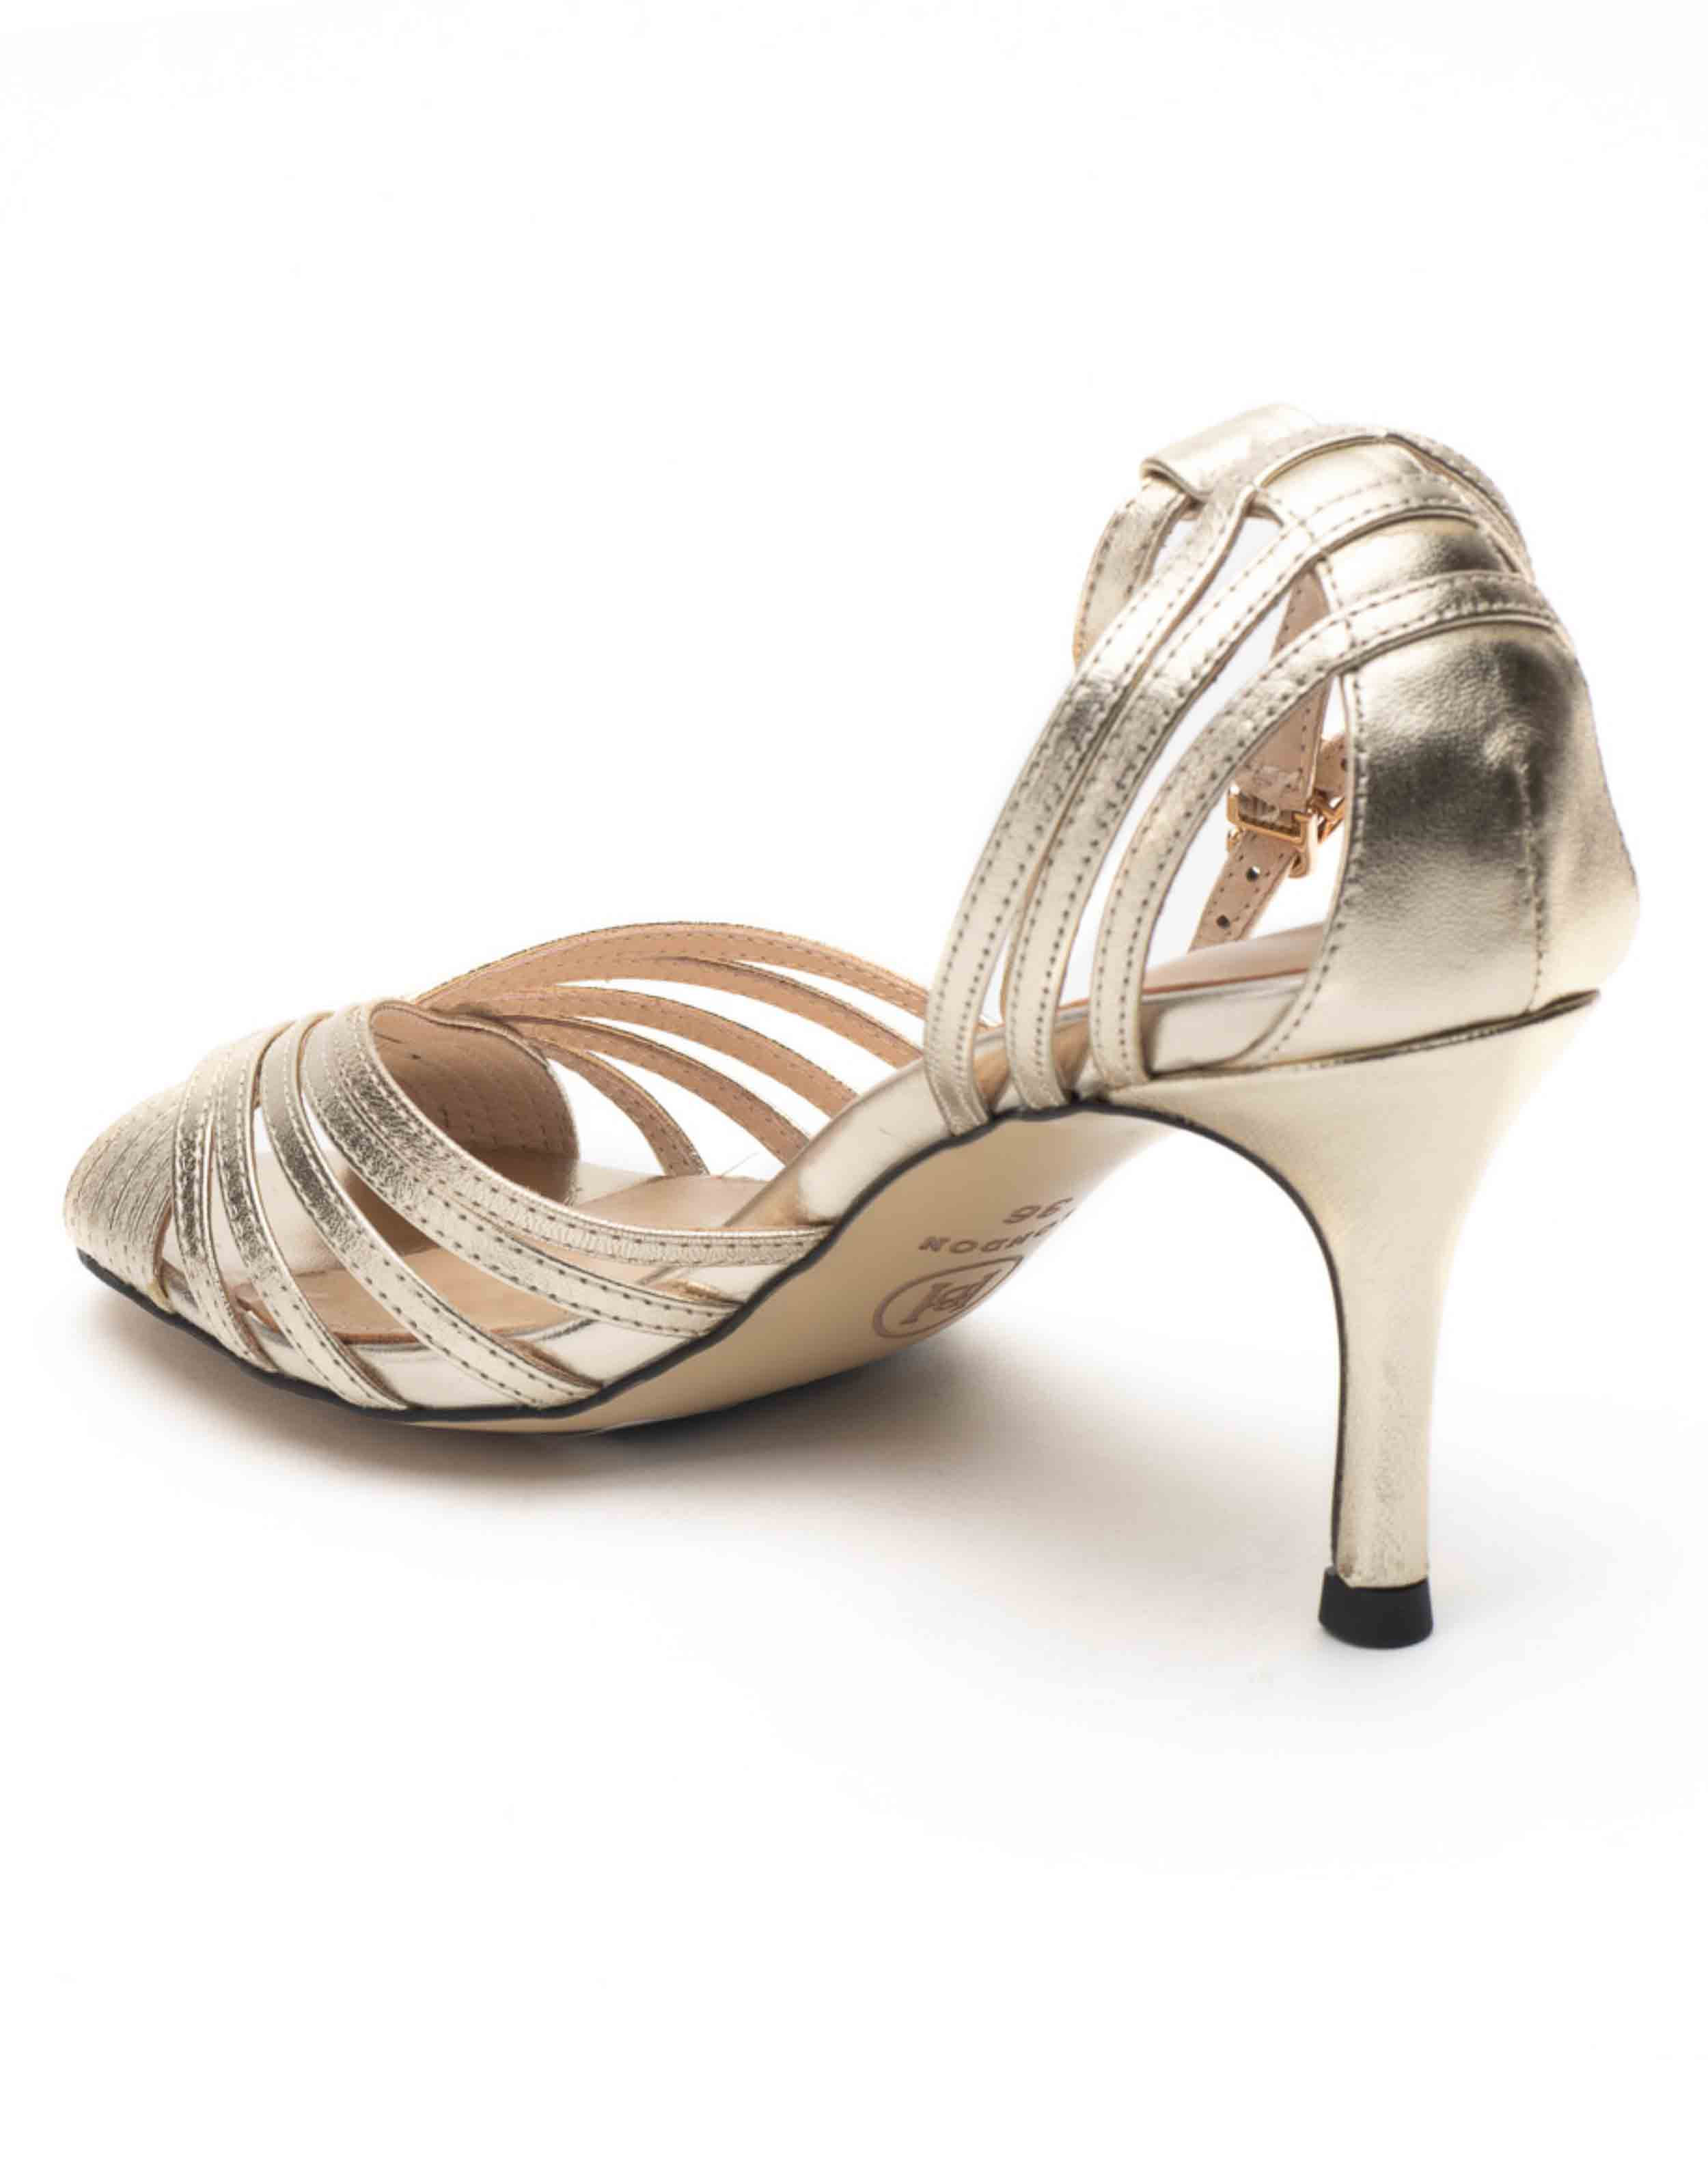 Heel _ Buckle London-Shoes-HBDARW088-Metallic Gold Ankle Strap Sandals-Metallic-3